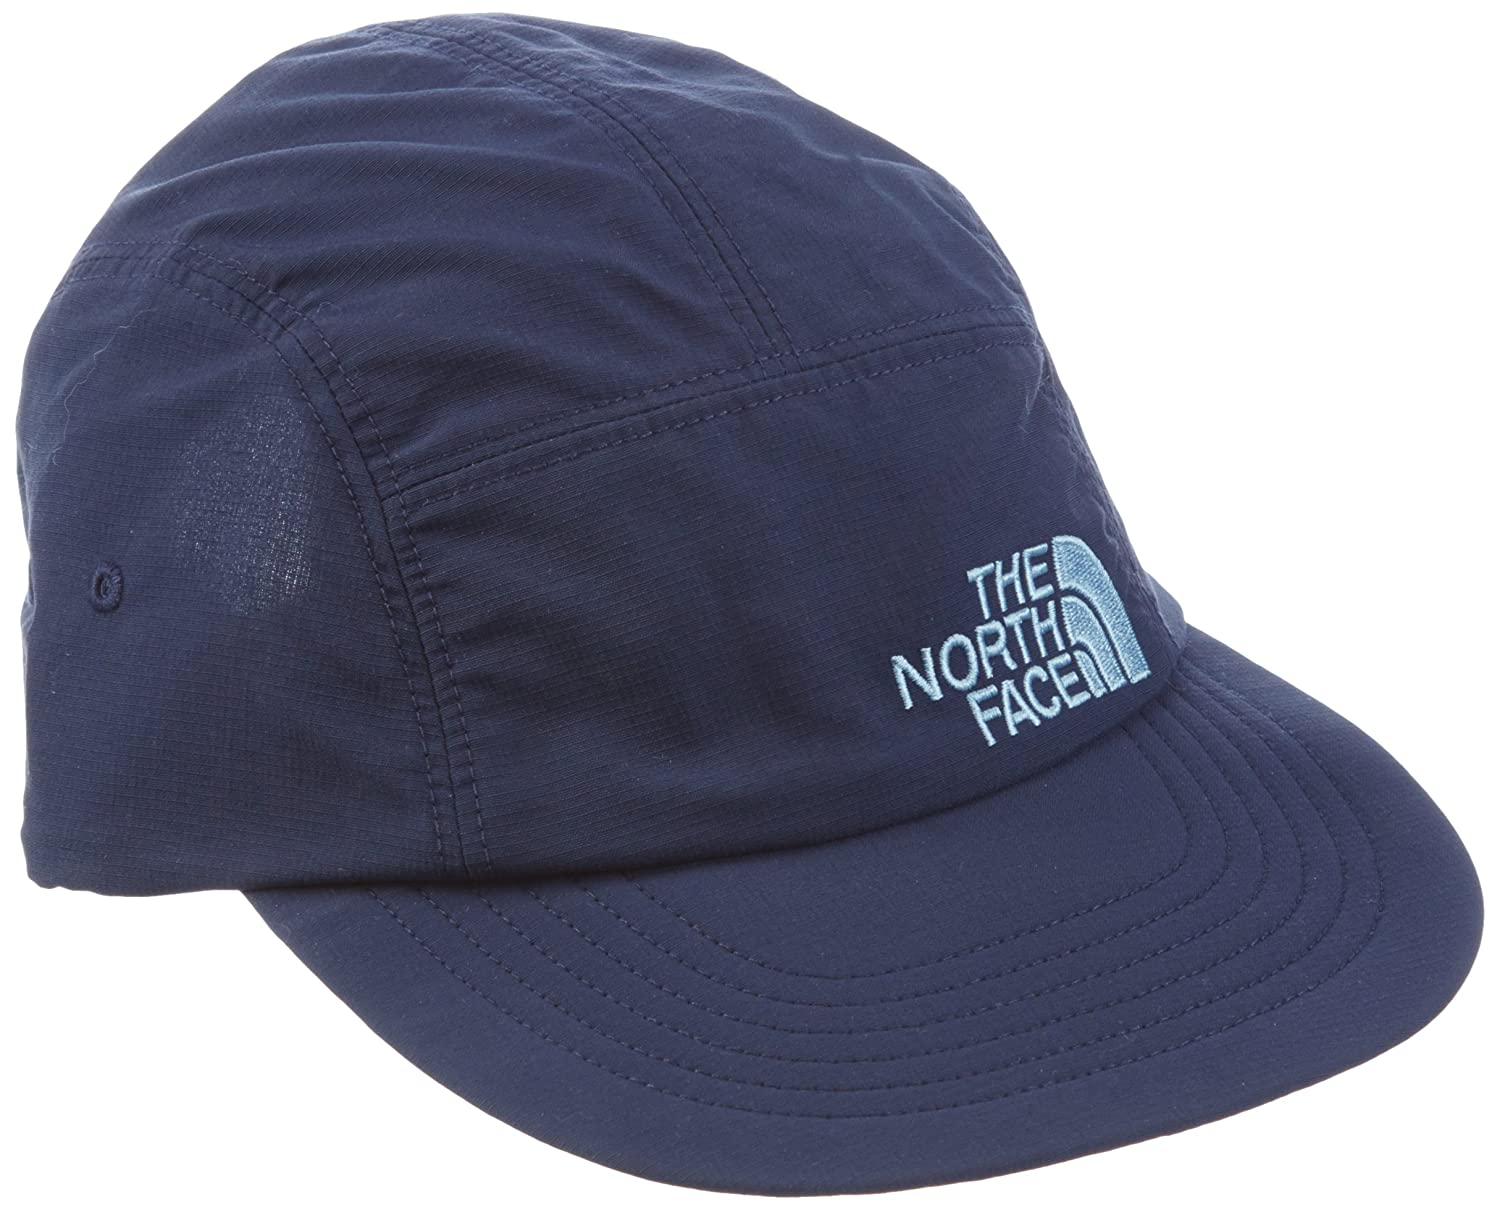 The North Face Kappe Horizon Folding Bill Cap Gorra, Unisex, Gris ...